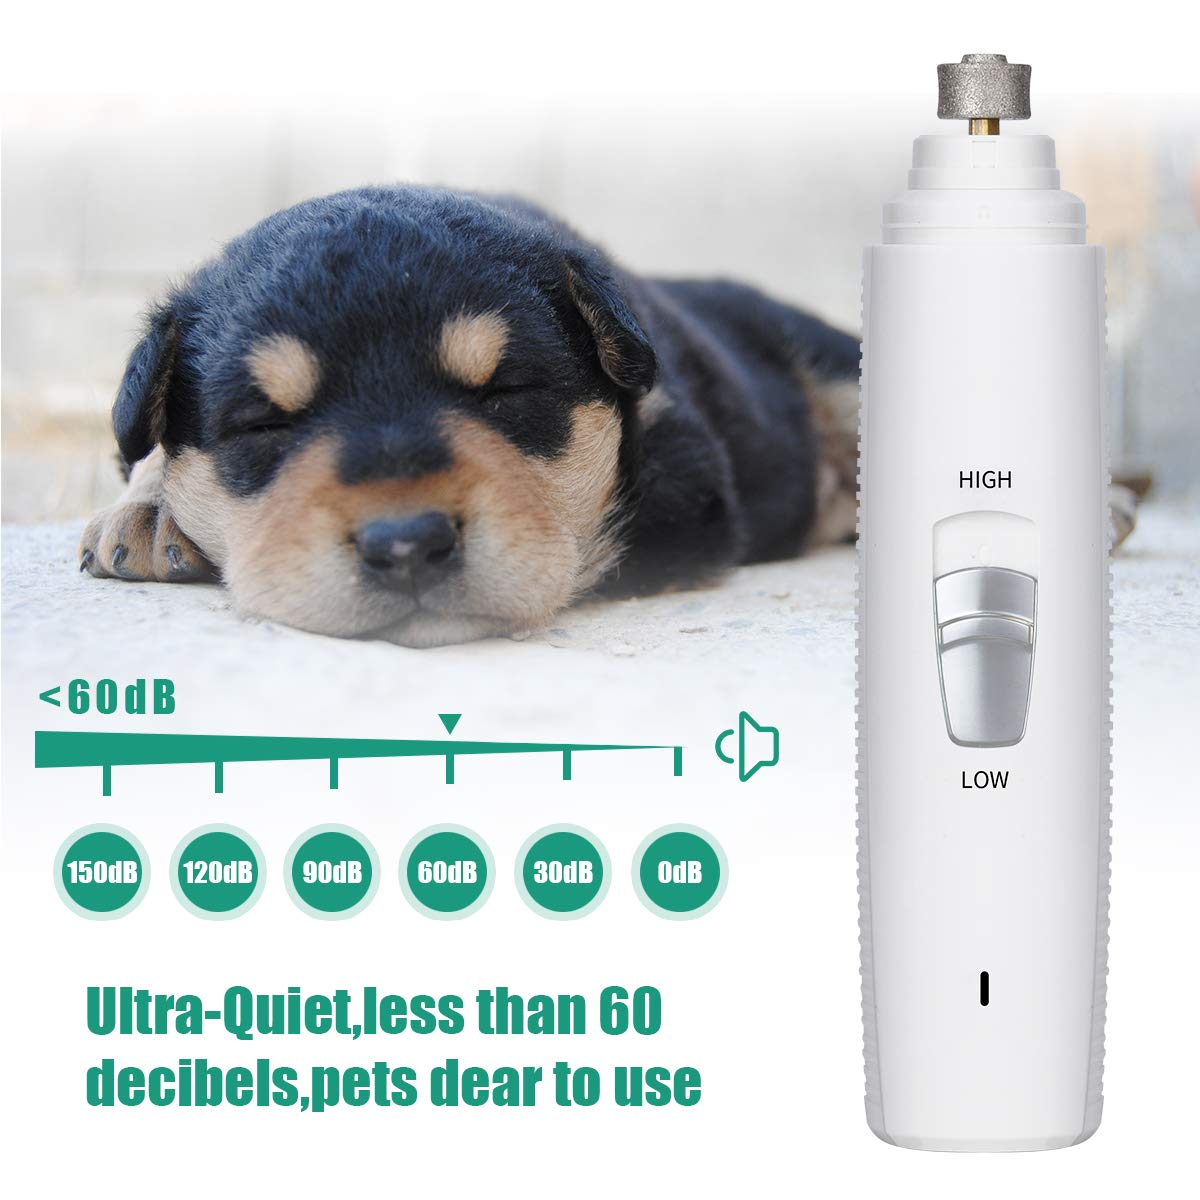 Anewgift Dog Nail Grinder,Electric Dog Nail Grinder Trimmer Clipper with USB Wire, Professional Nail Grooming &Trimming for Small Medium Large Pets, Safe, Ultra Quiet Painless